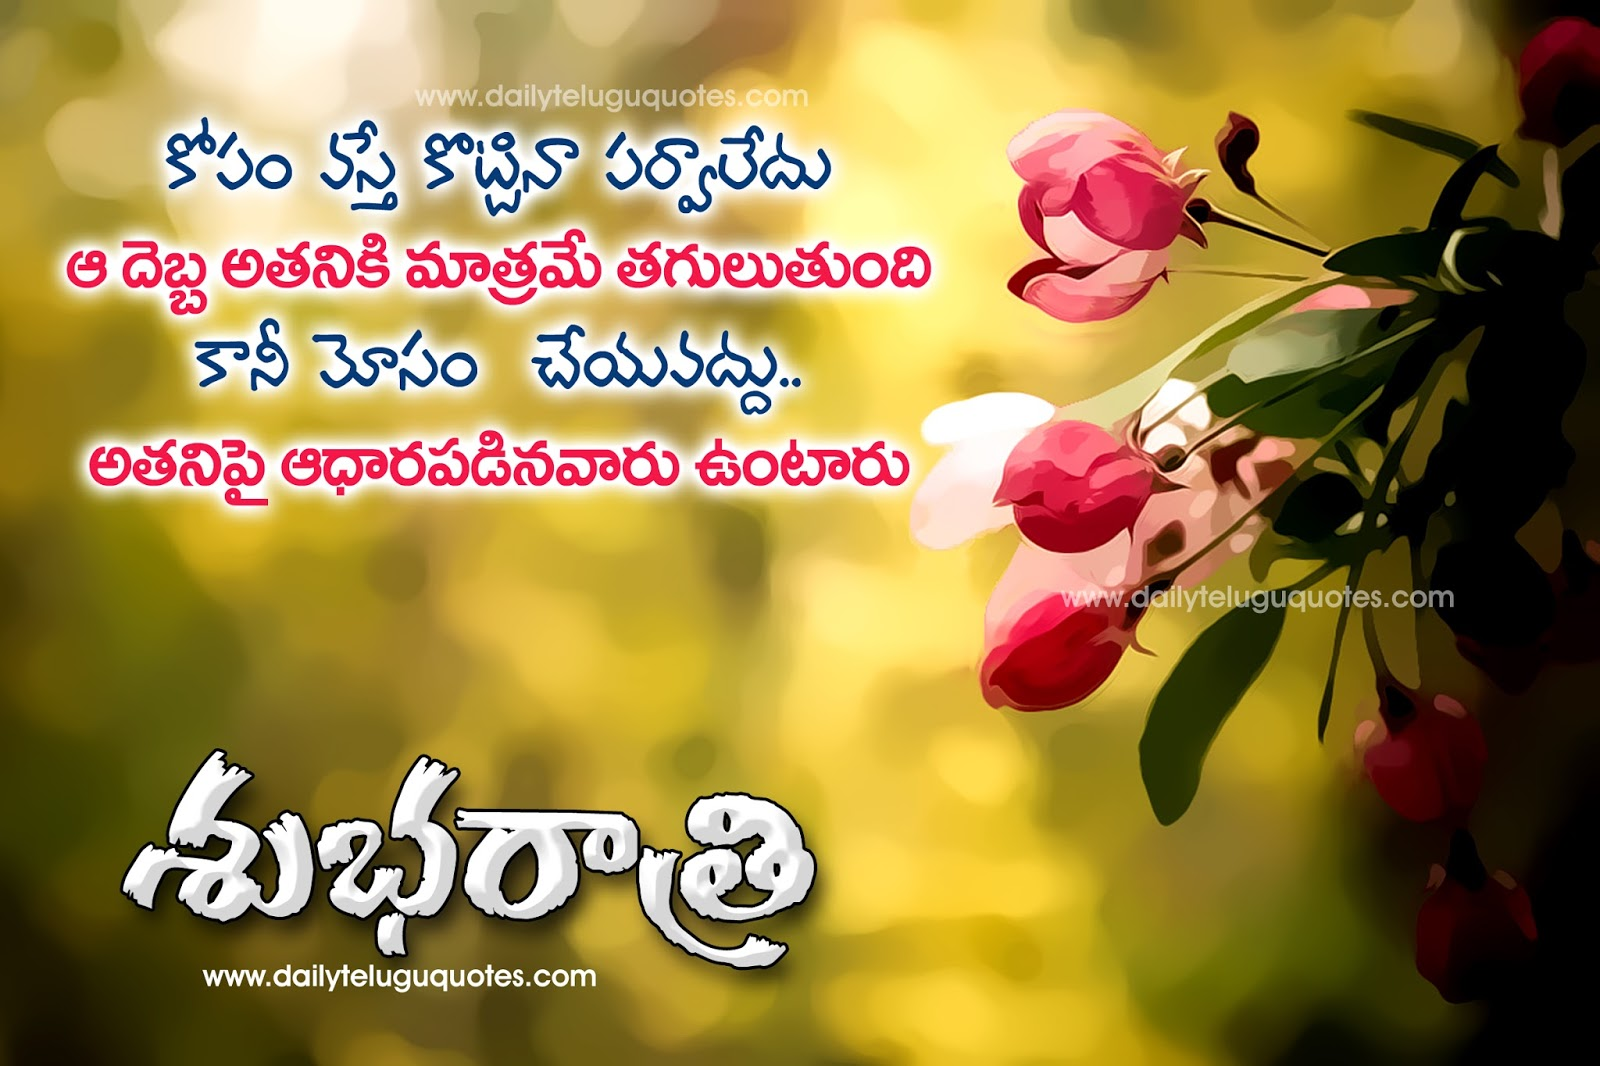 Heart touching telugu life quotes for good night greetings good night telugu quotes greetings wihes wallpapers images m4hsunfo